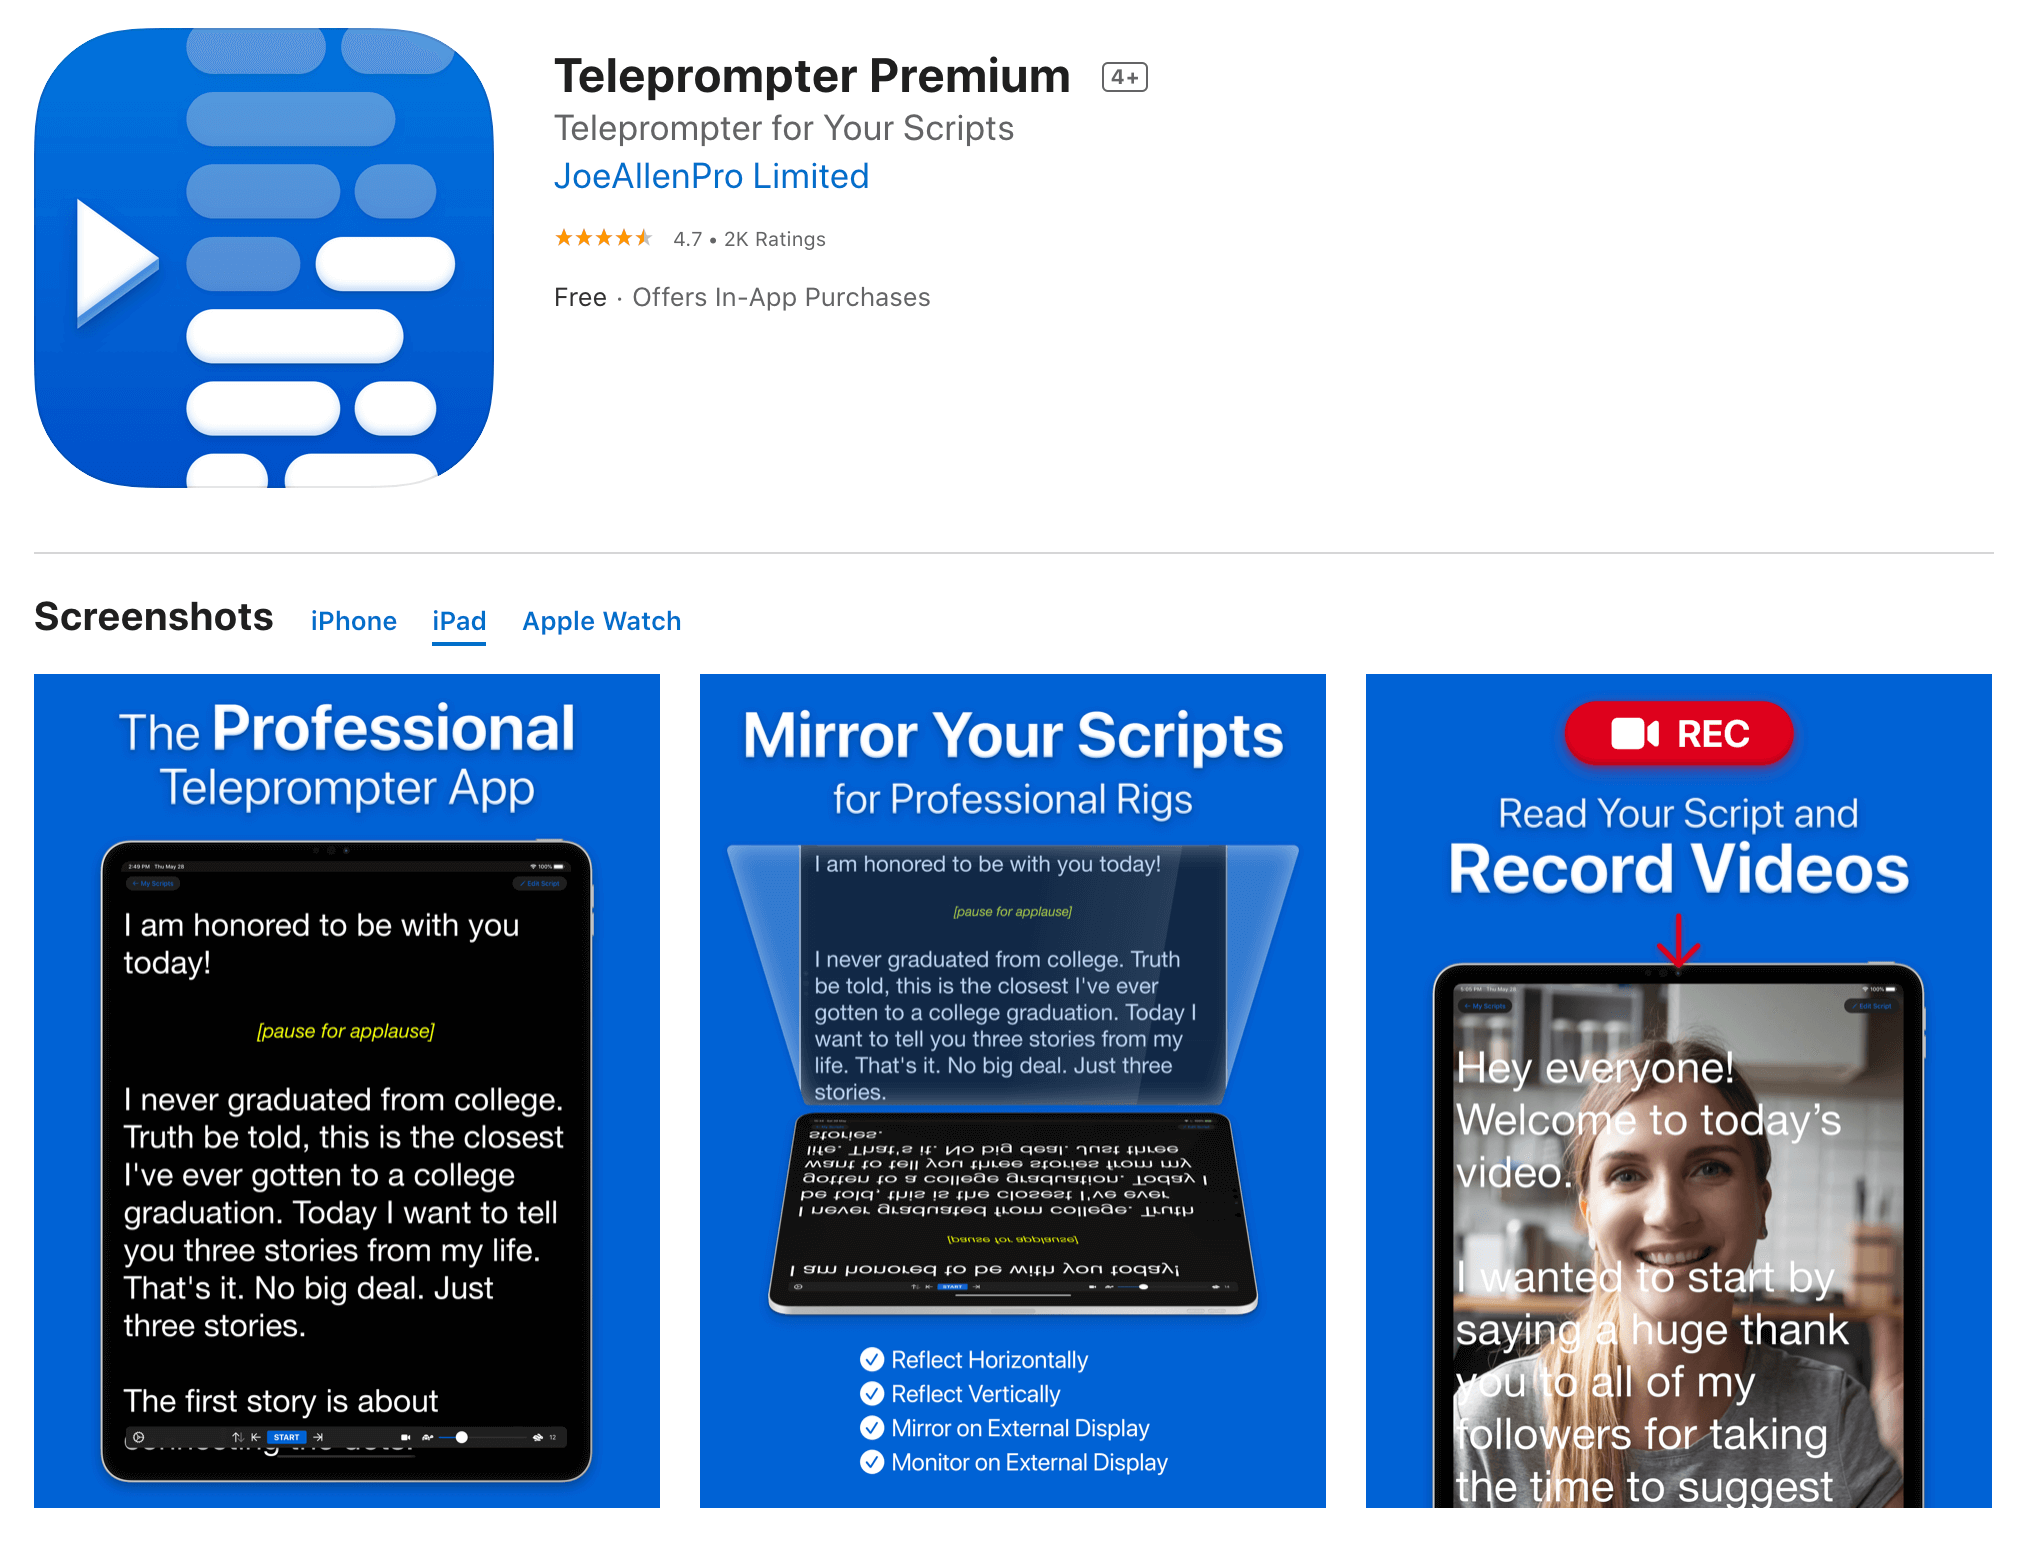 iPad as Teleprompter